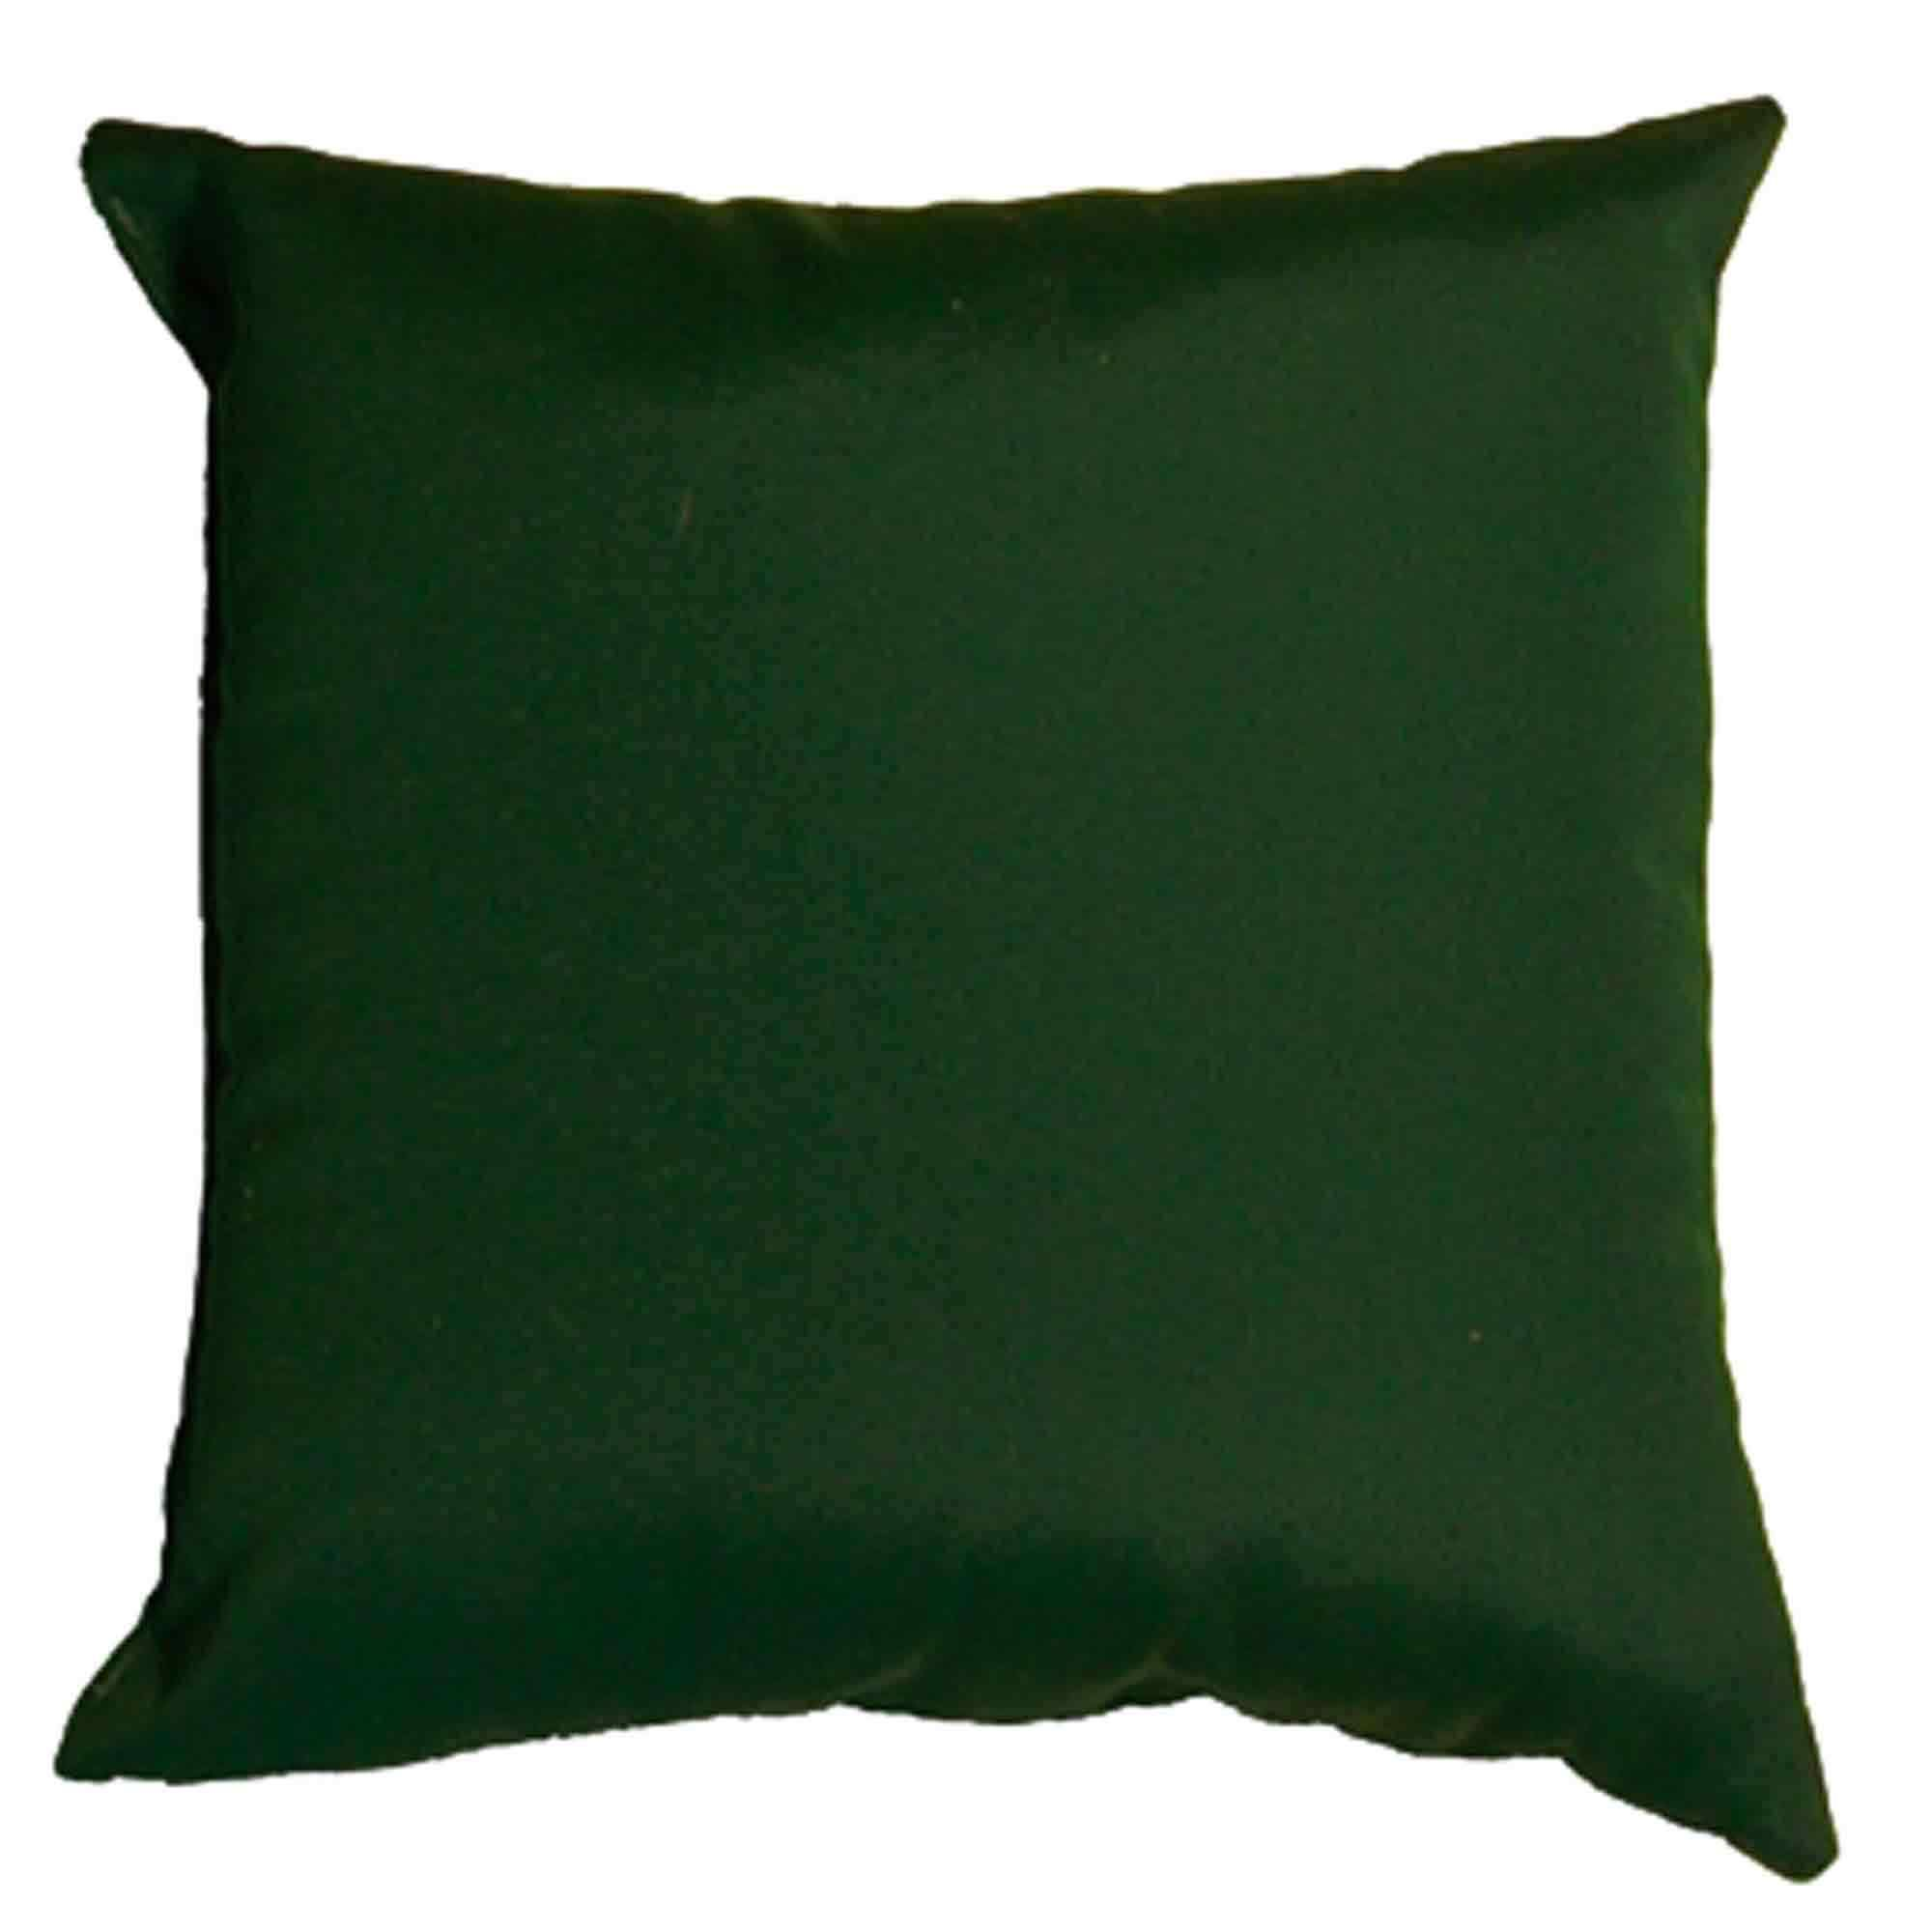 attractive cover apple pillow lime green pillows of rectangular decorative throw